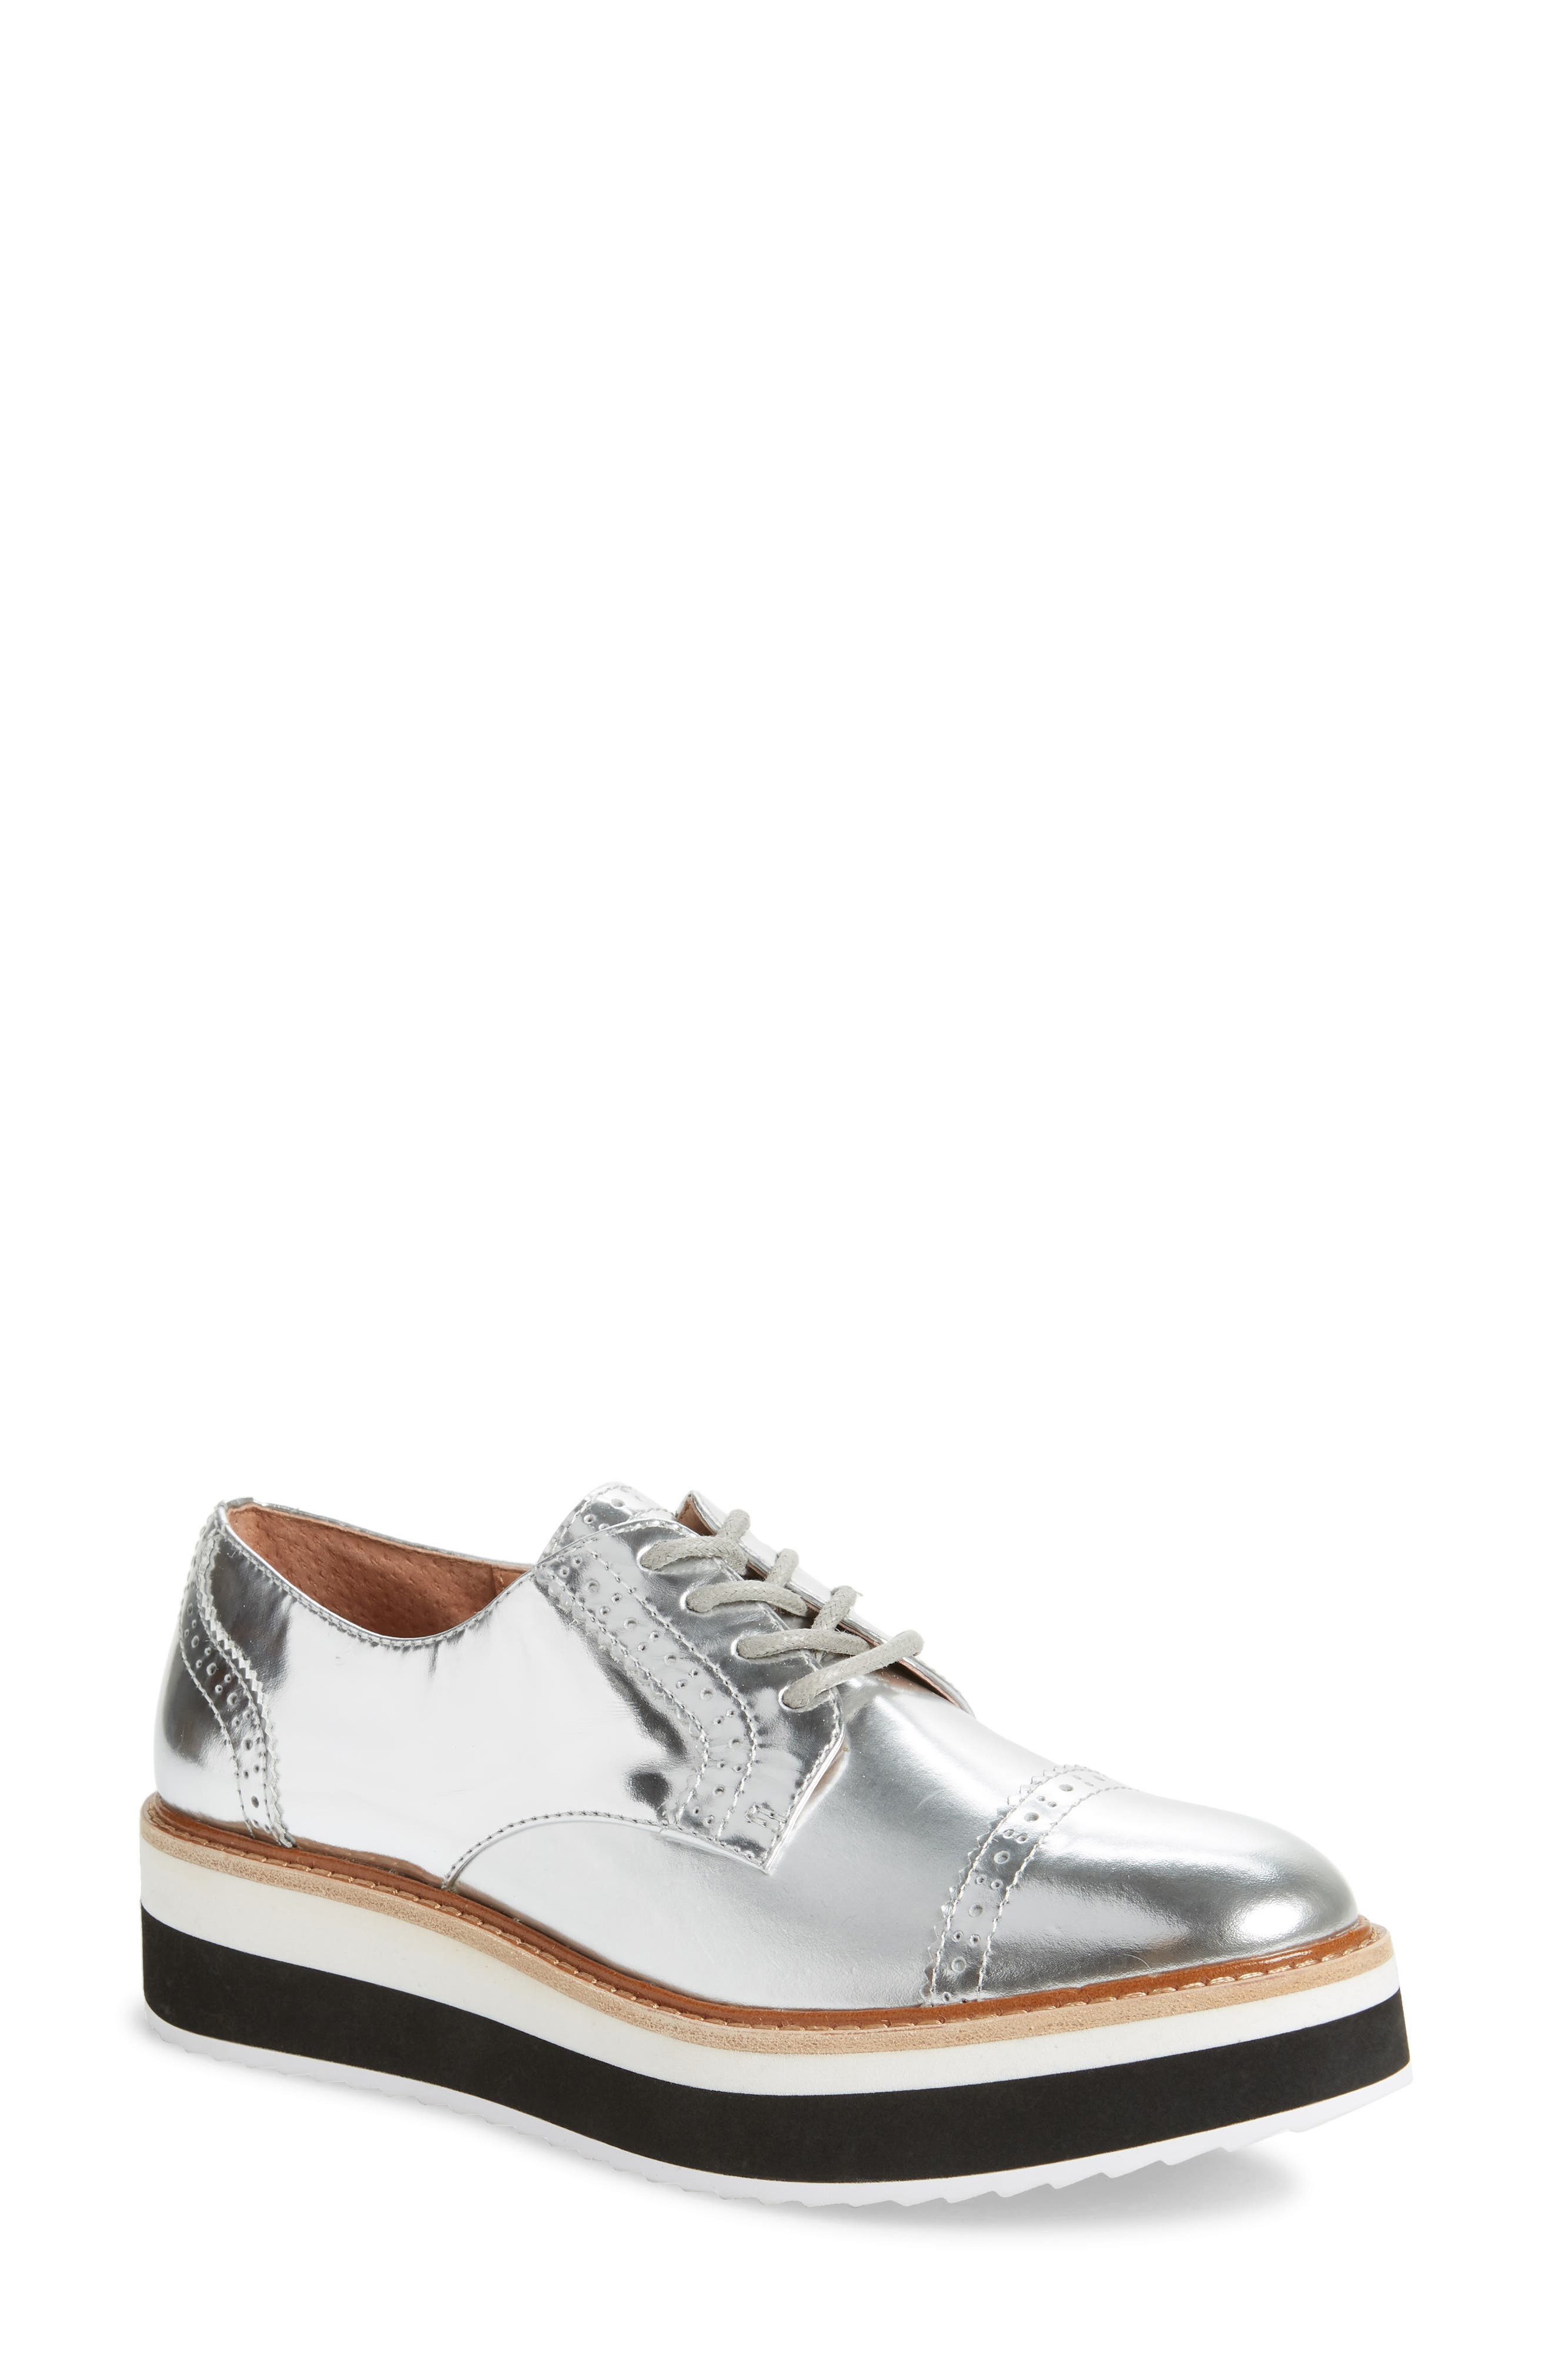 x Atlantic-Pacific The Flatform Derby, Main, color, SILVER LEATHER